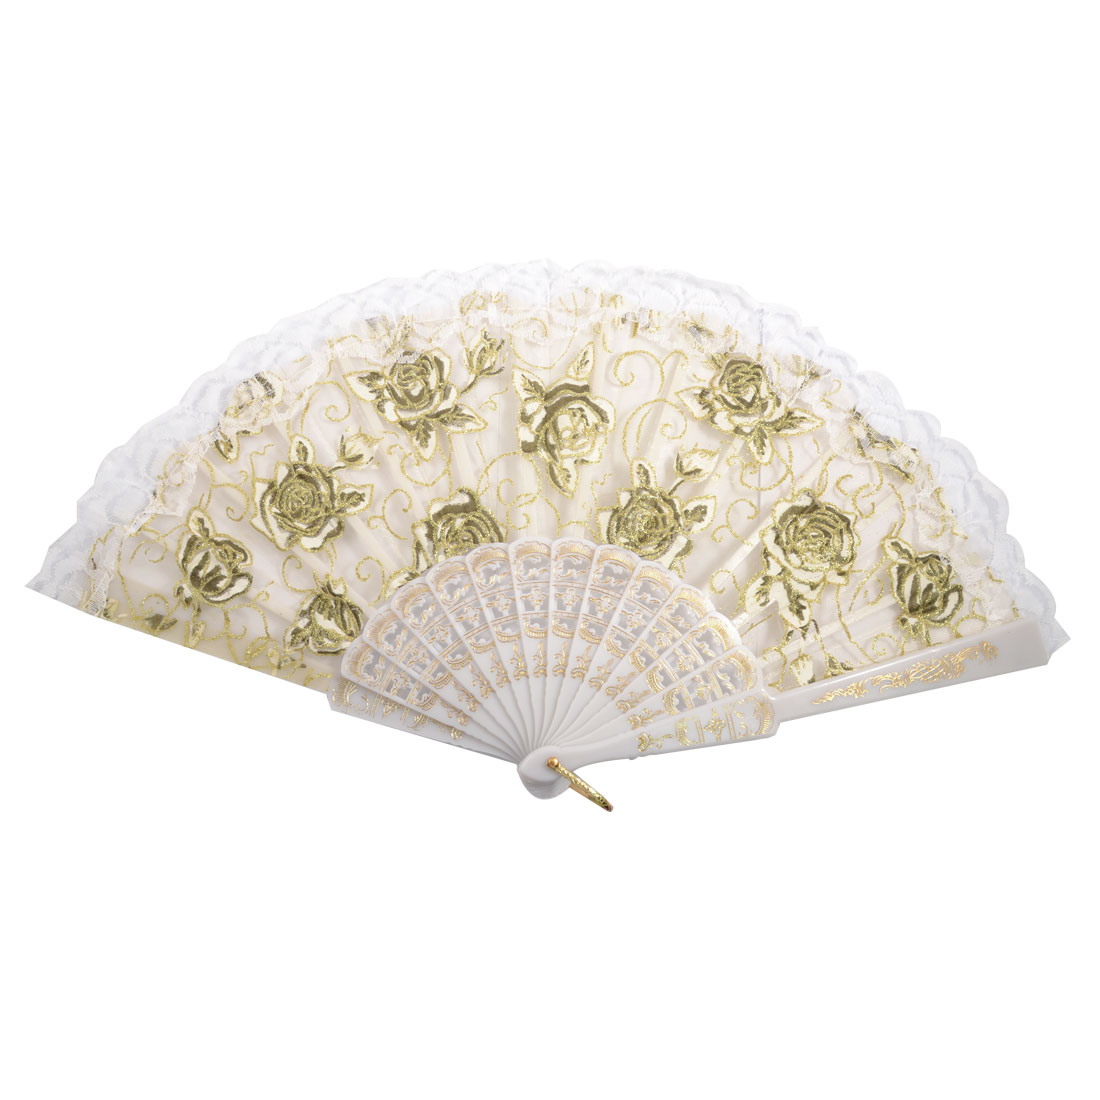 White Lace Hem Plastic Rib Rose Pattern Gauze Dancing Hand Fan